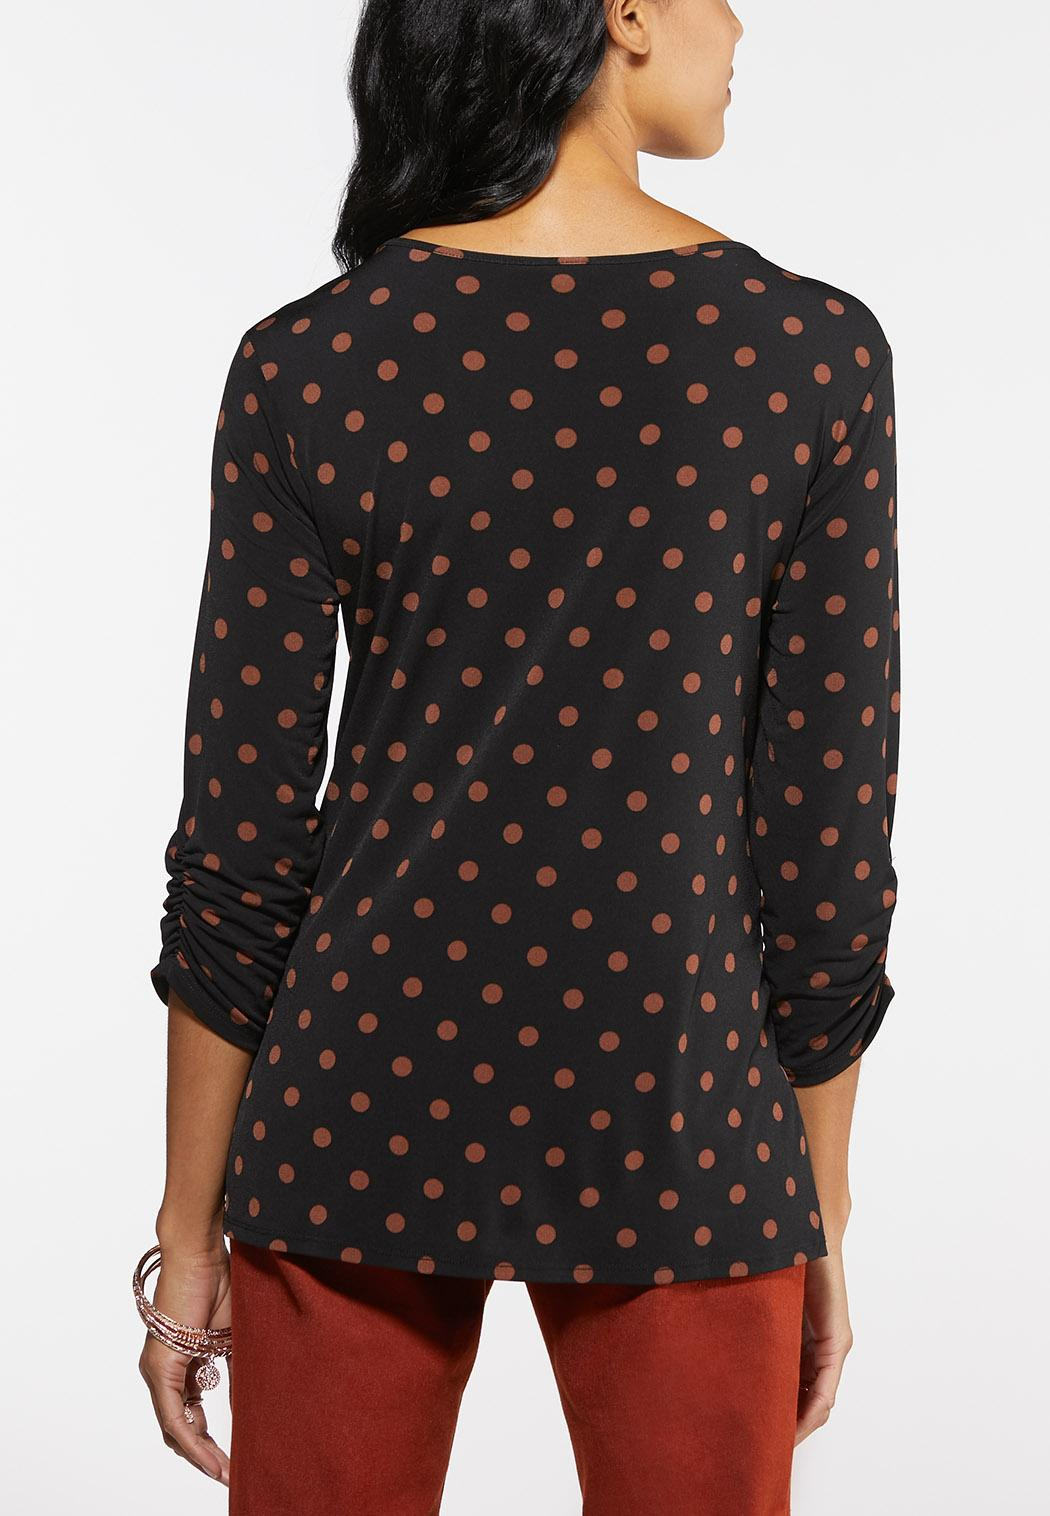 Plus Size Dotted Buckle Cinched Top (Item #43964697)